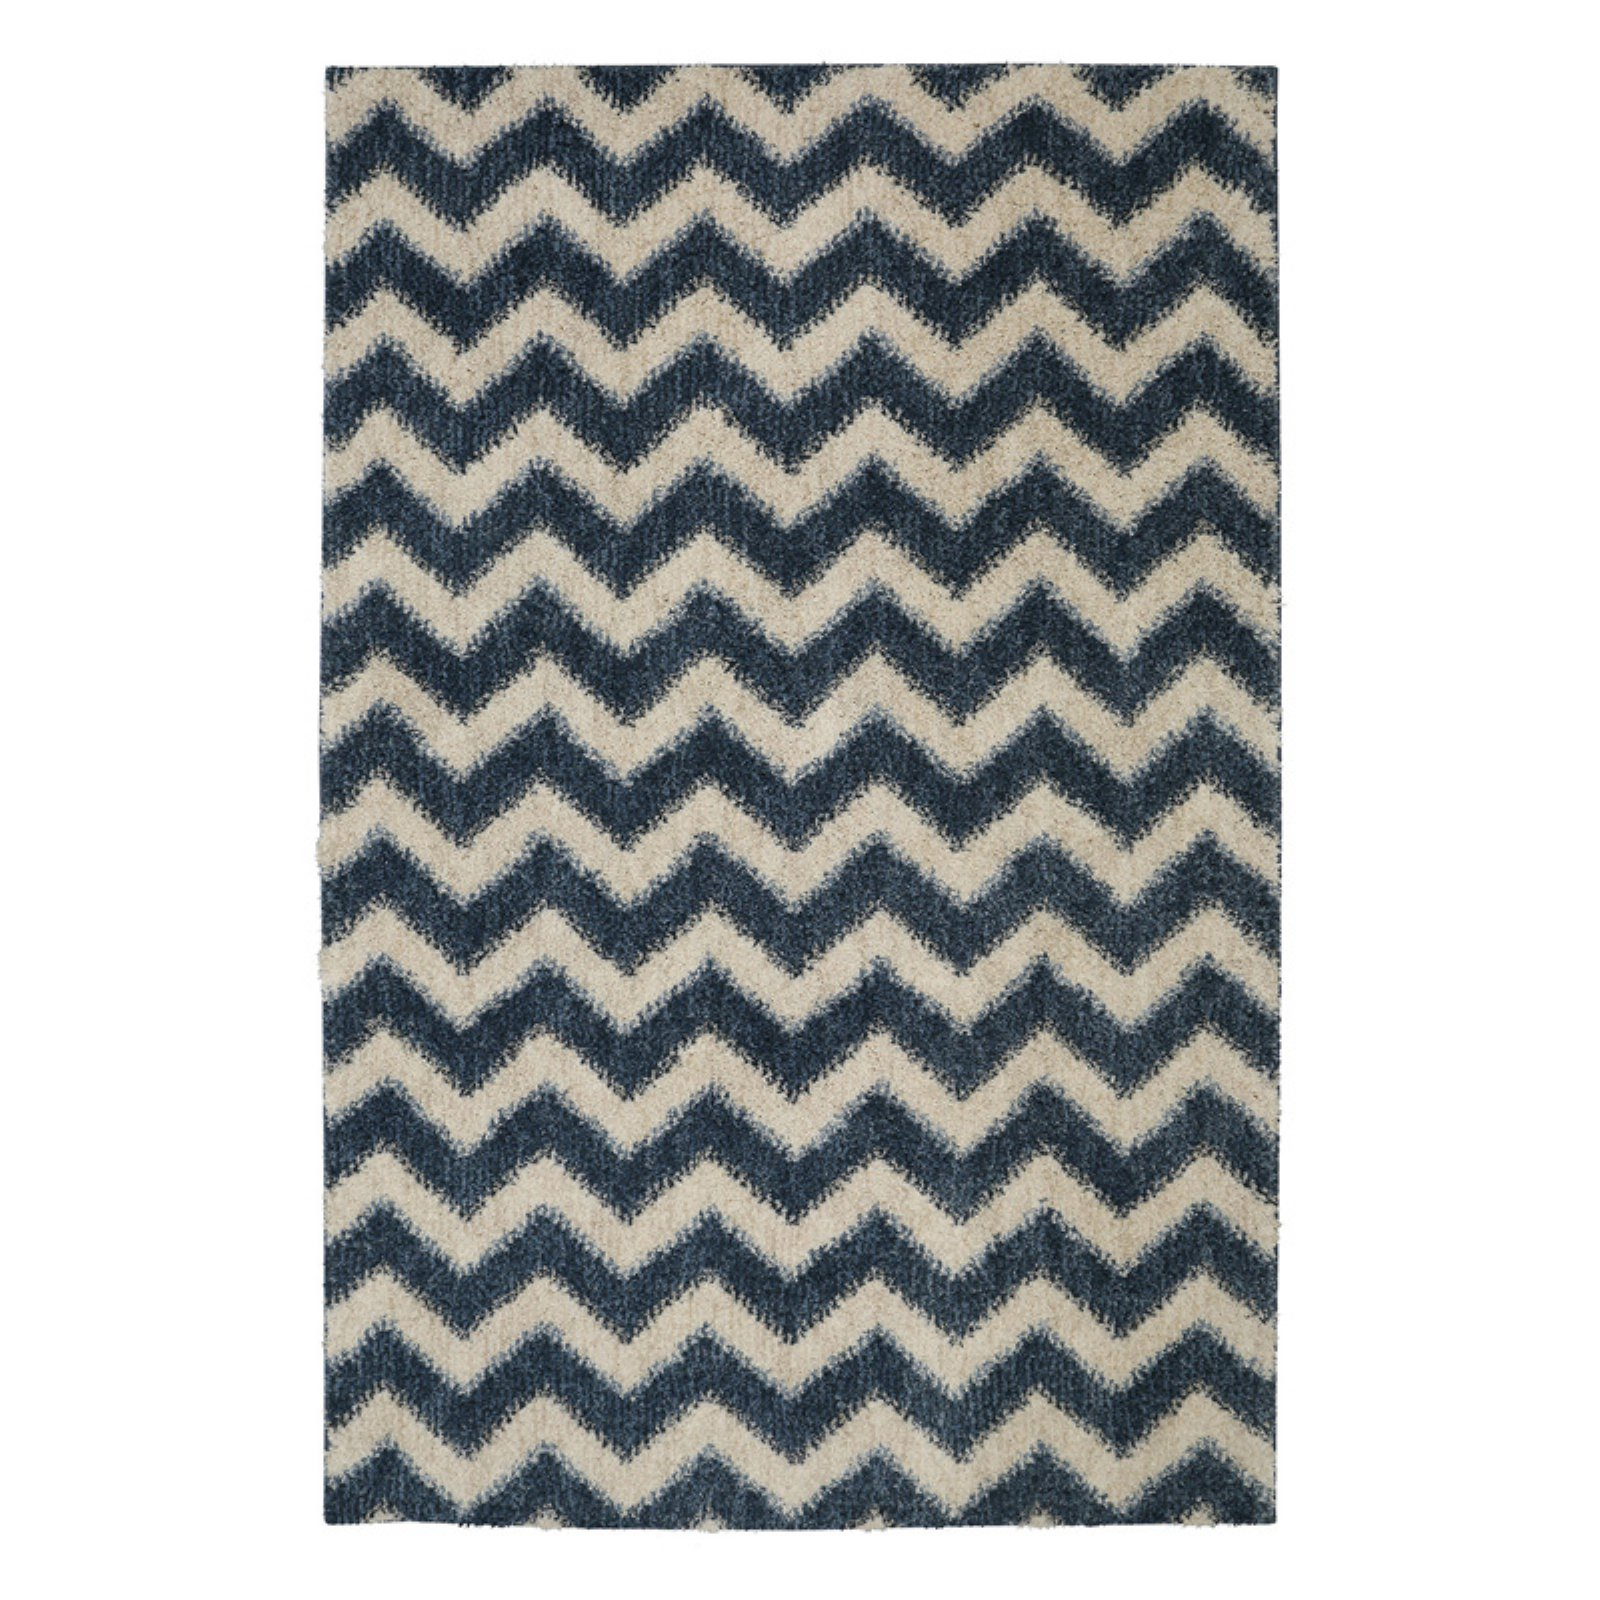 Mohawk Home Stitched Chevron Area Rug